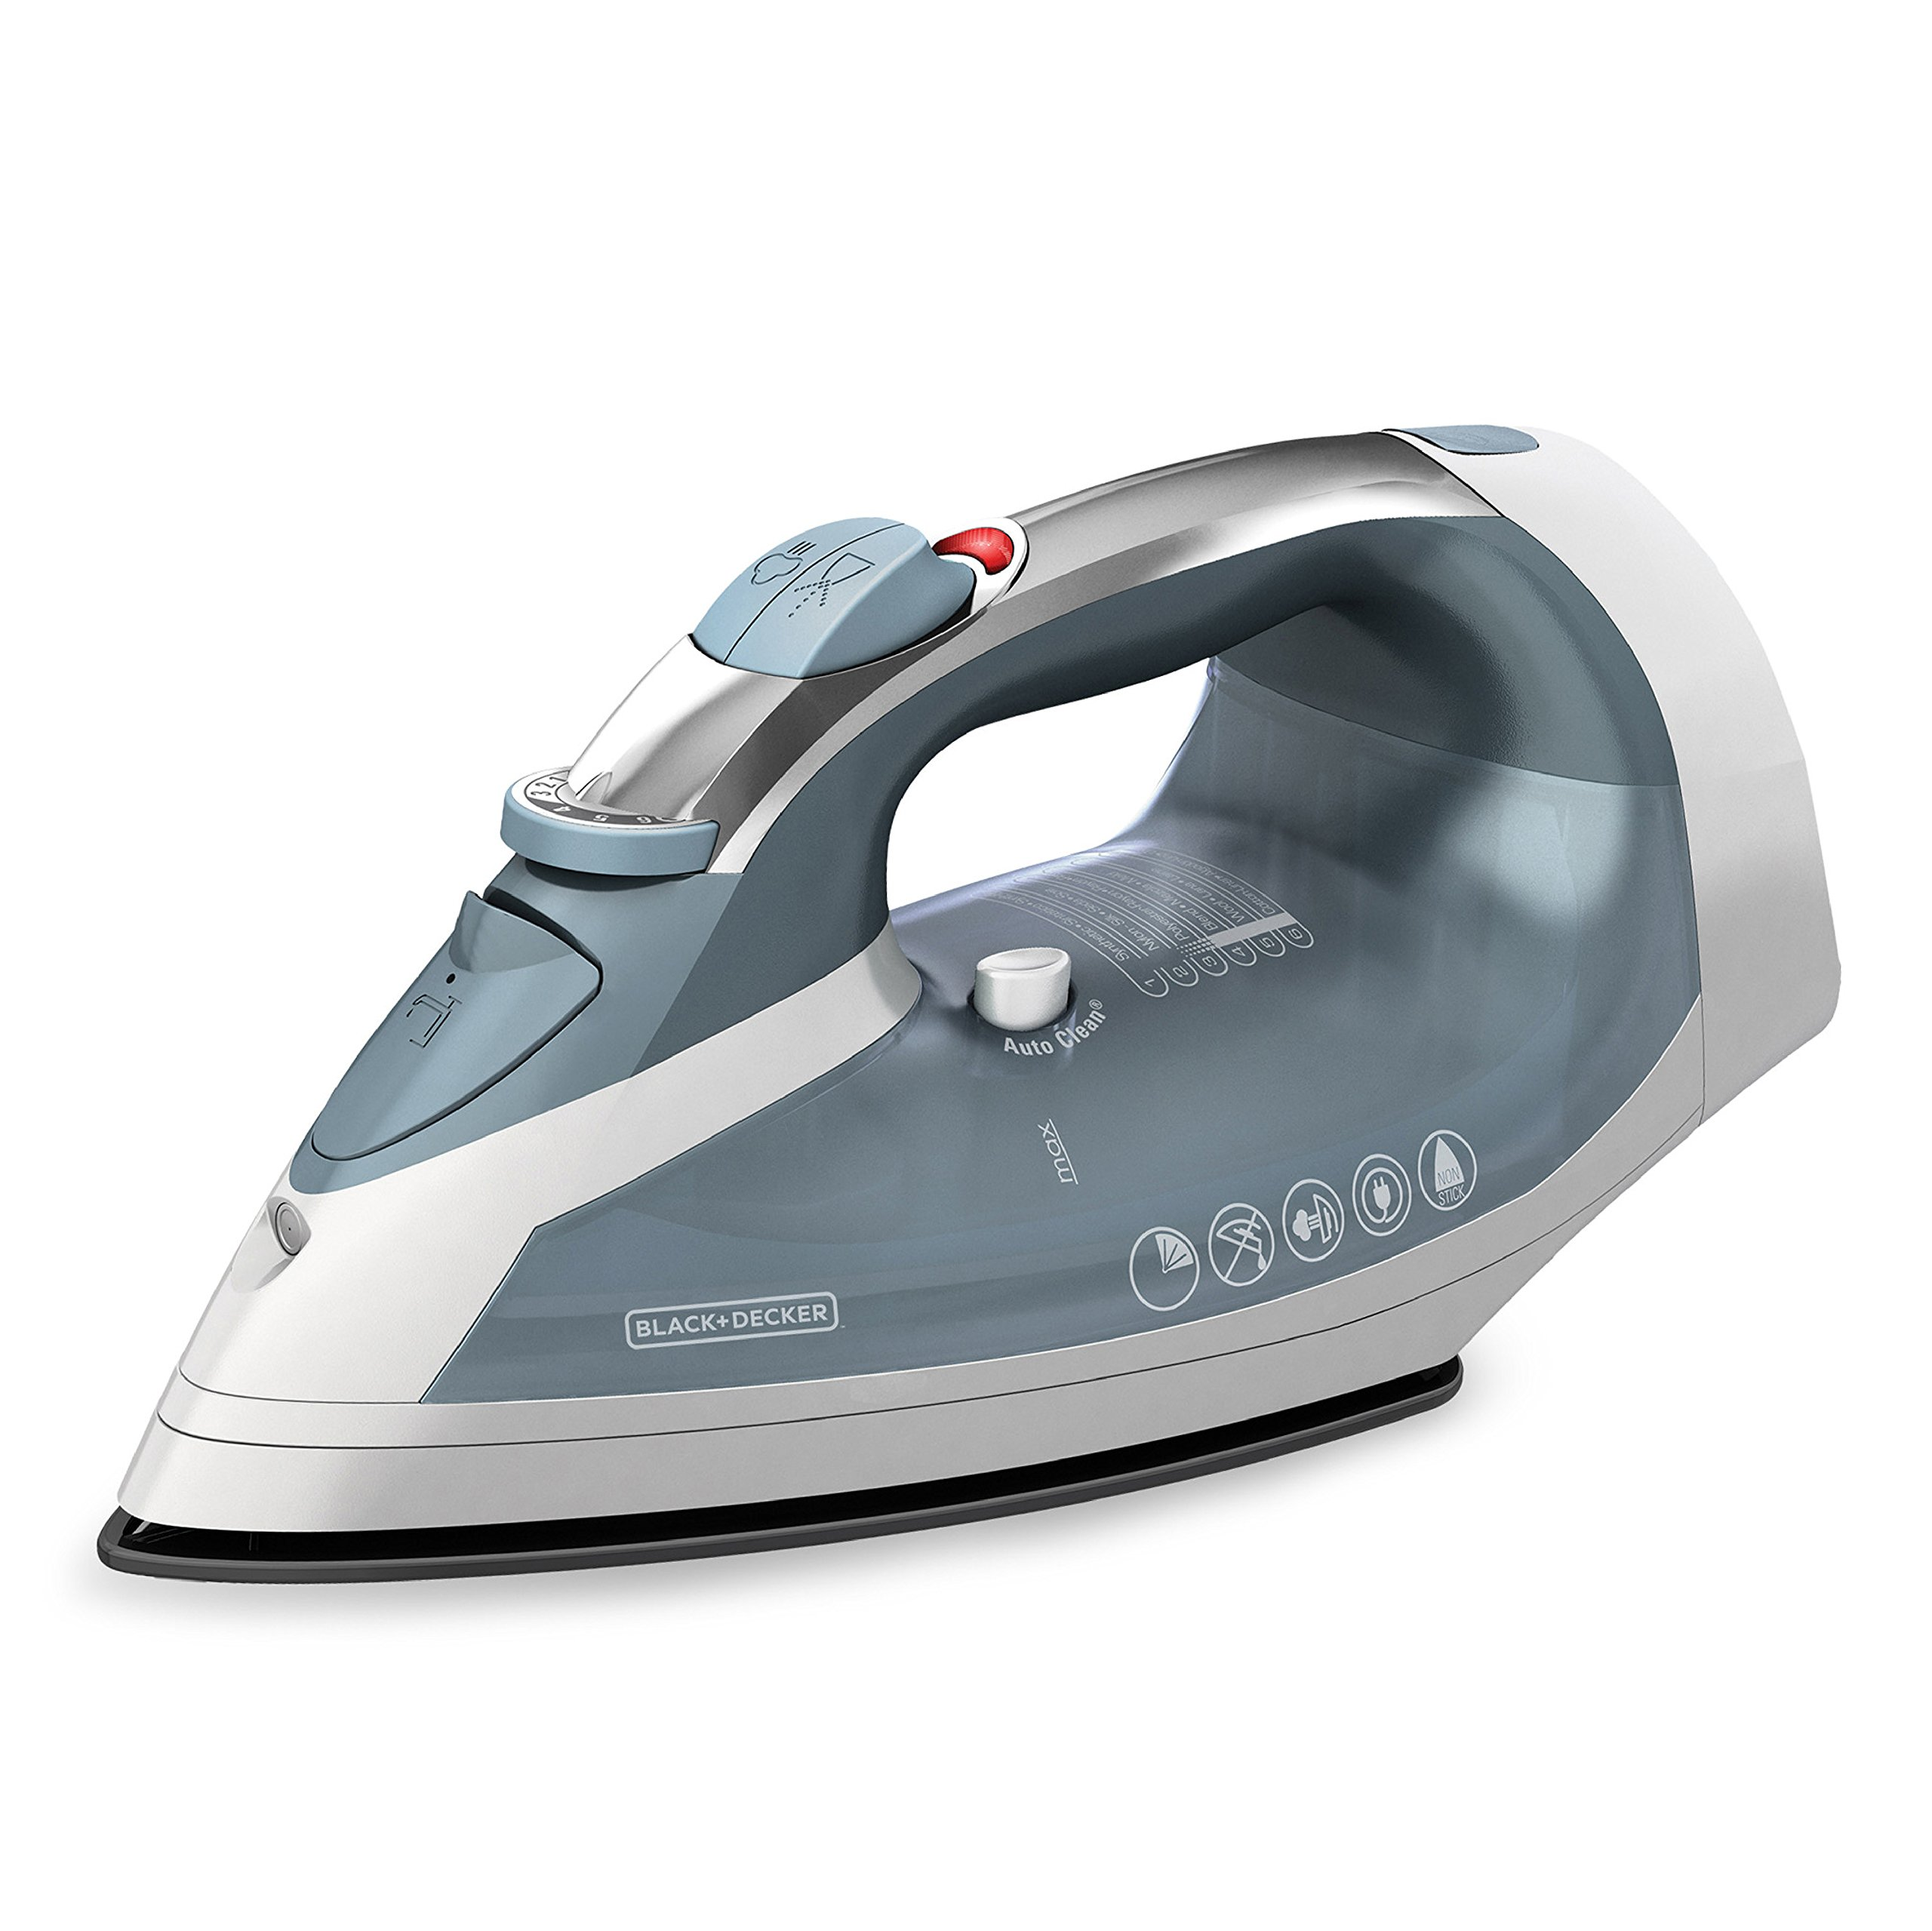 BLACK+DECKER Cord-Reel Steam Iron, Grey/White, ICR05X by BLACK+DECKER